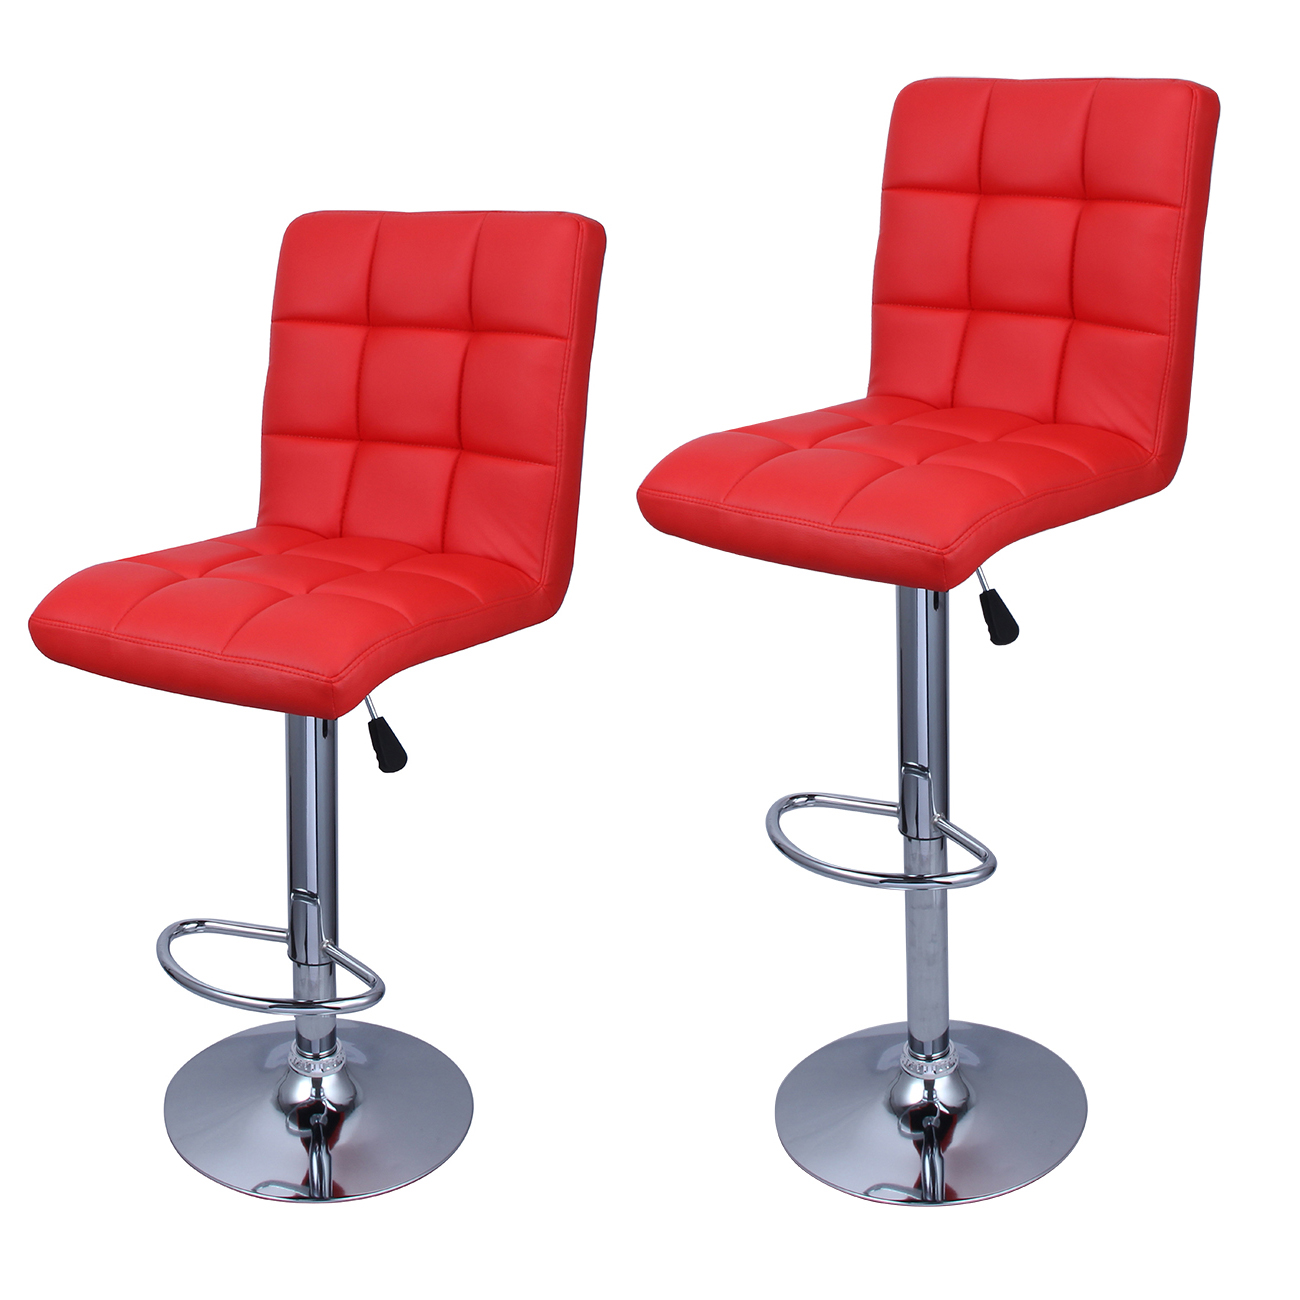 set of 2 modern bar stools leather hydraulic swivel dinning